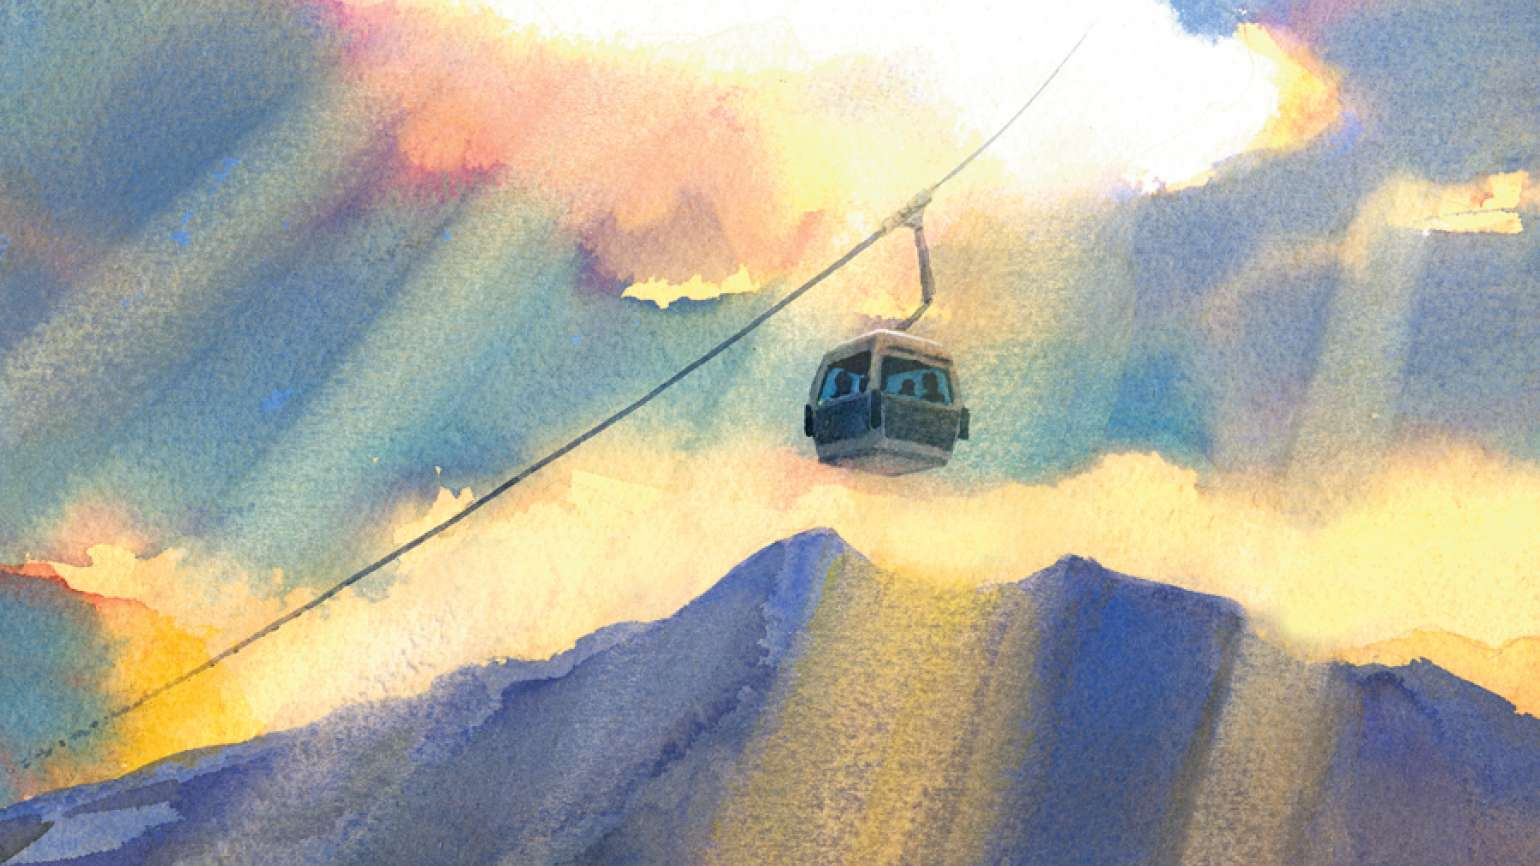 A ski gondola rises, with heavenly streams of light pouring down